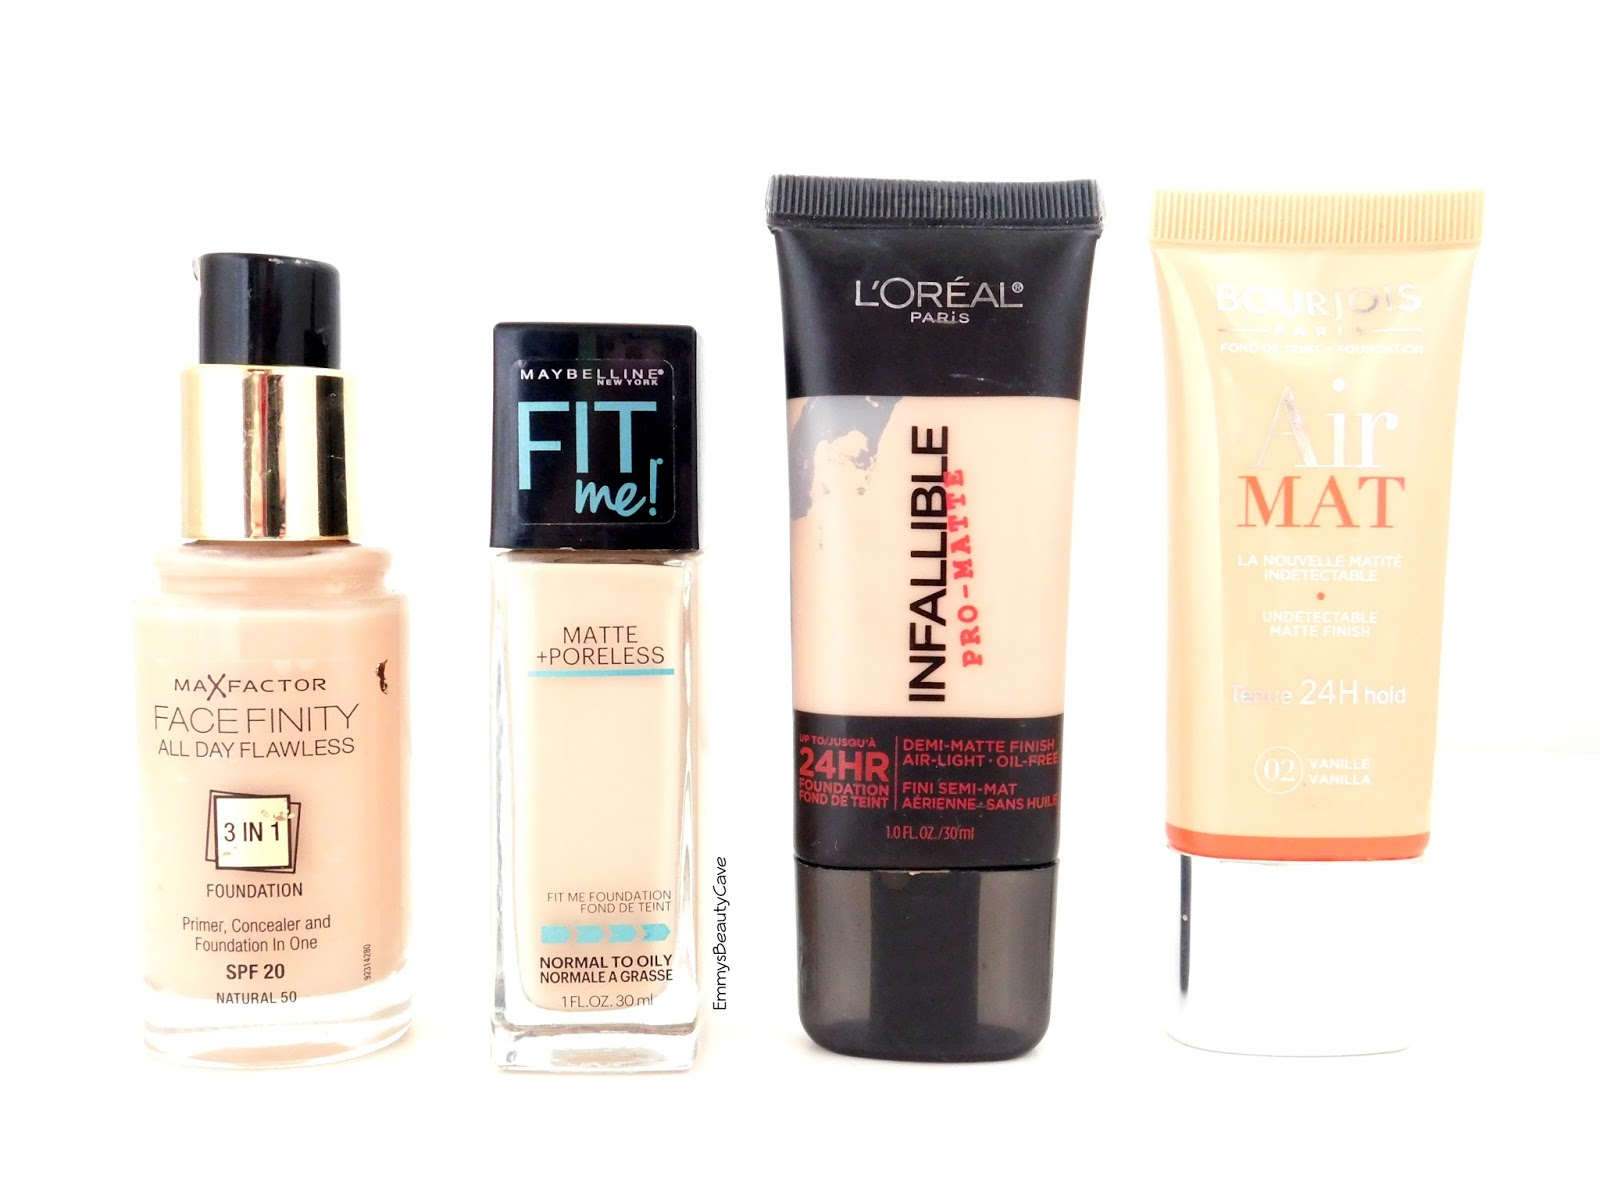 My Top 4 Drugstore Foundations